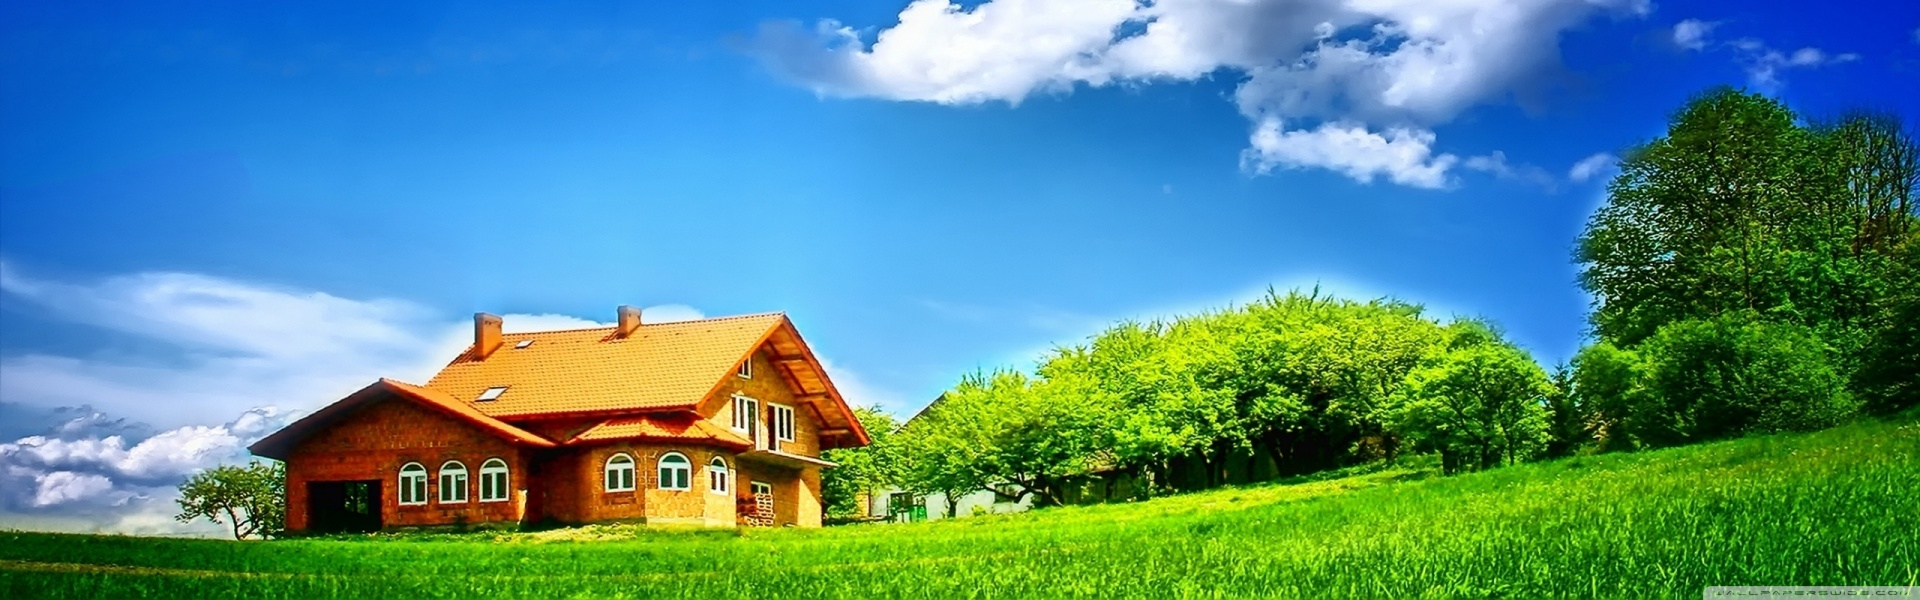 home wallpaper 1920x600 46971